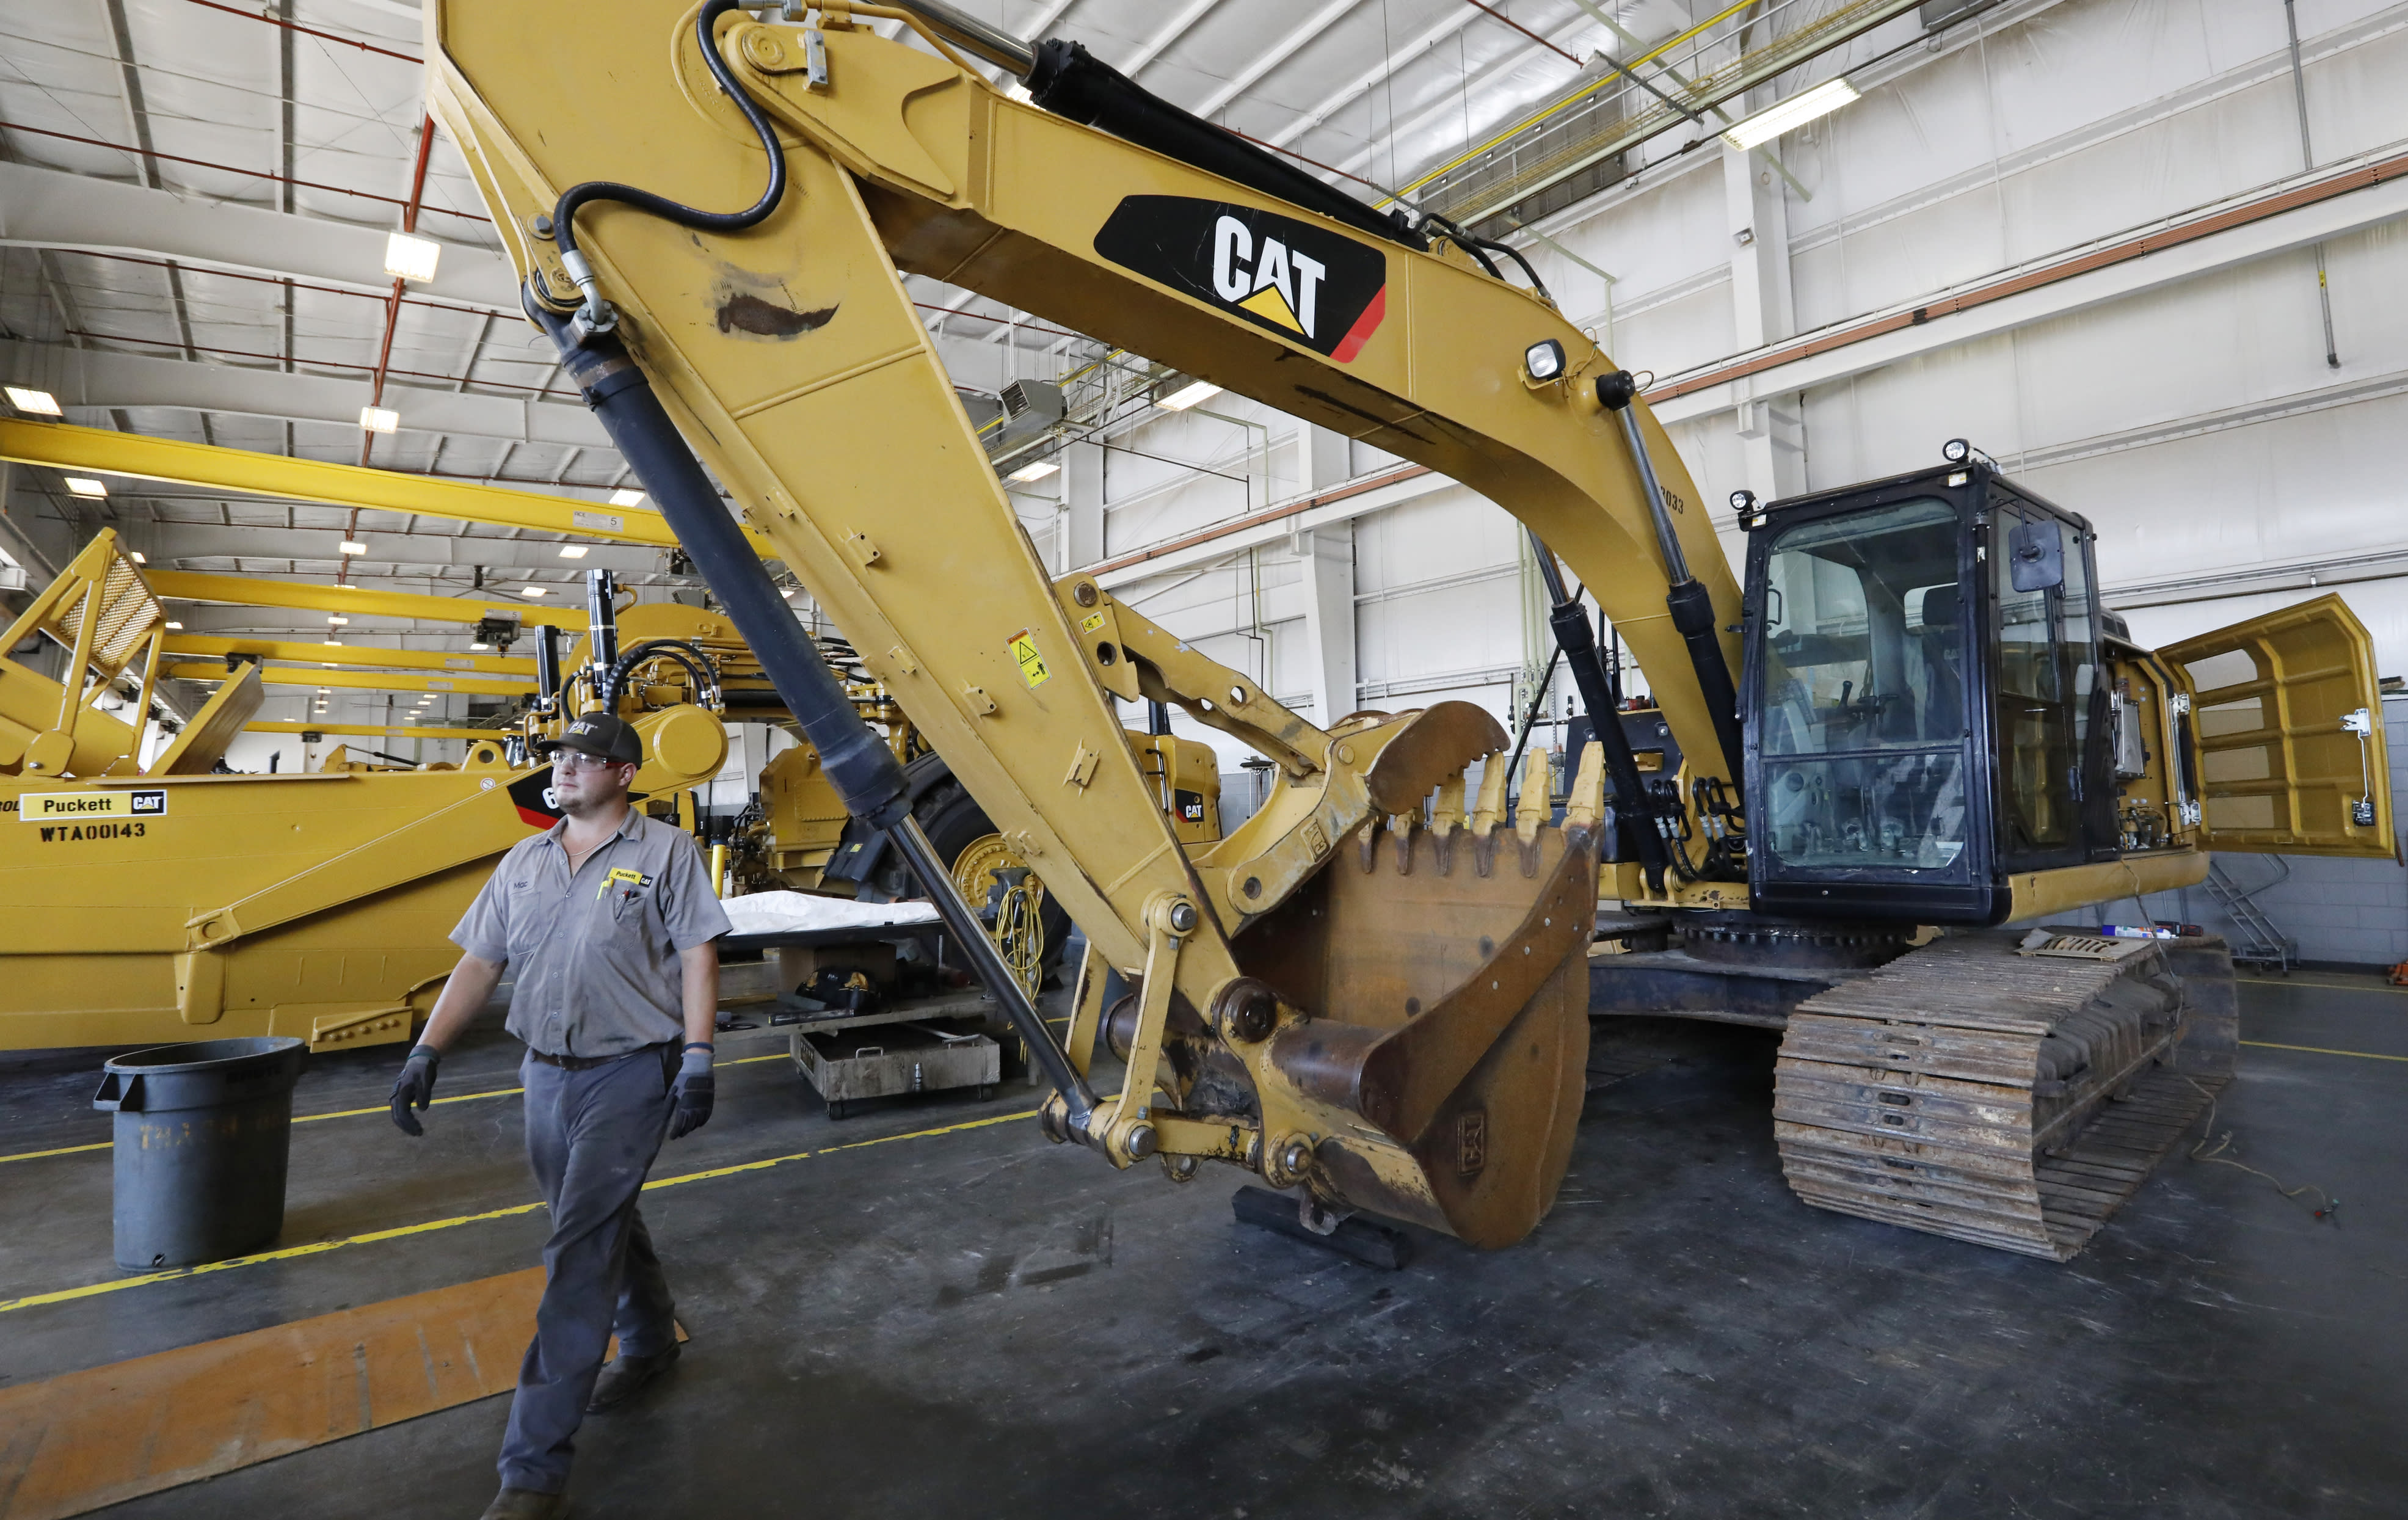 USA  manufacturing dives to 10-year low as trade tensions weigh